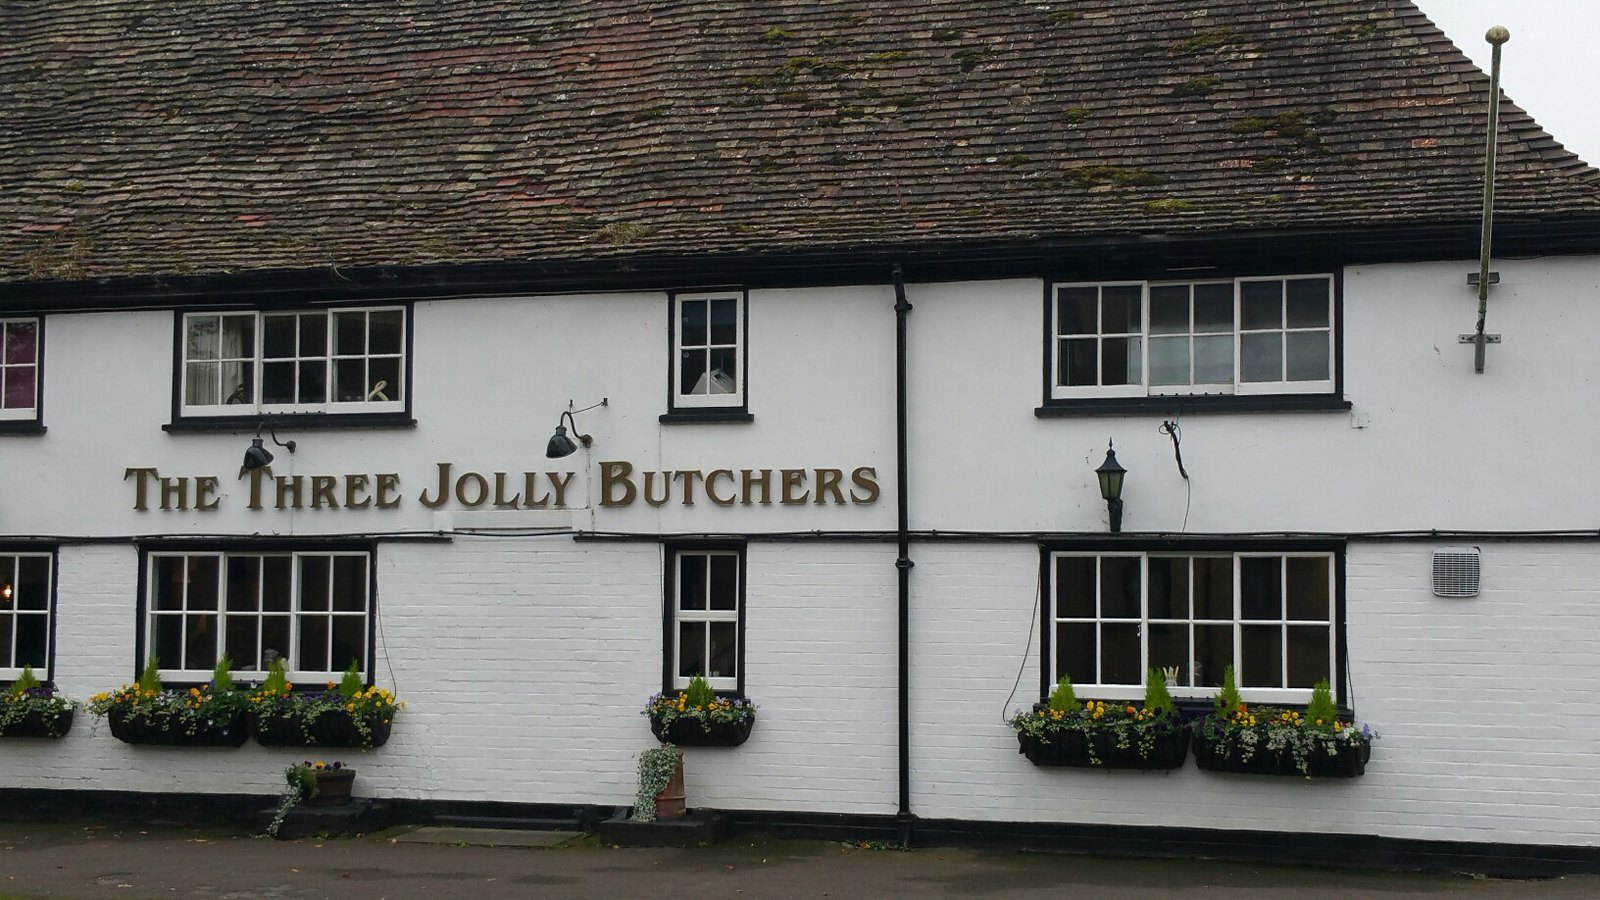 Three Jolly Butchers Many thanks to Marc for this photograph